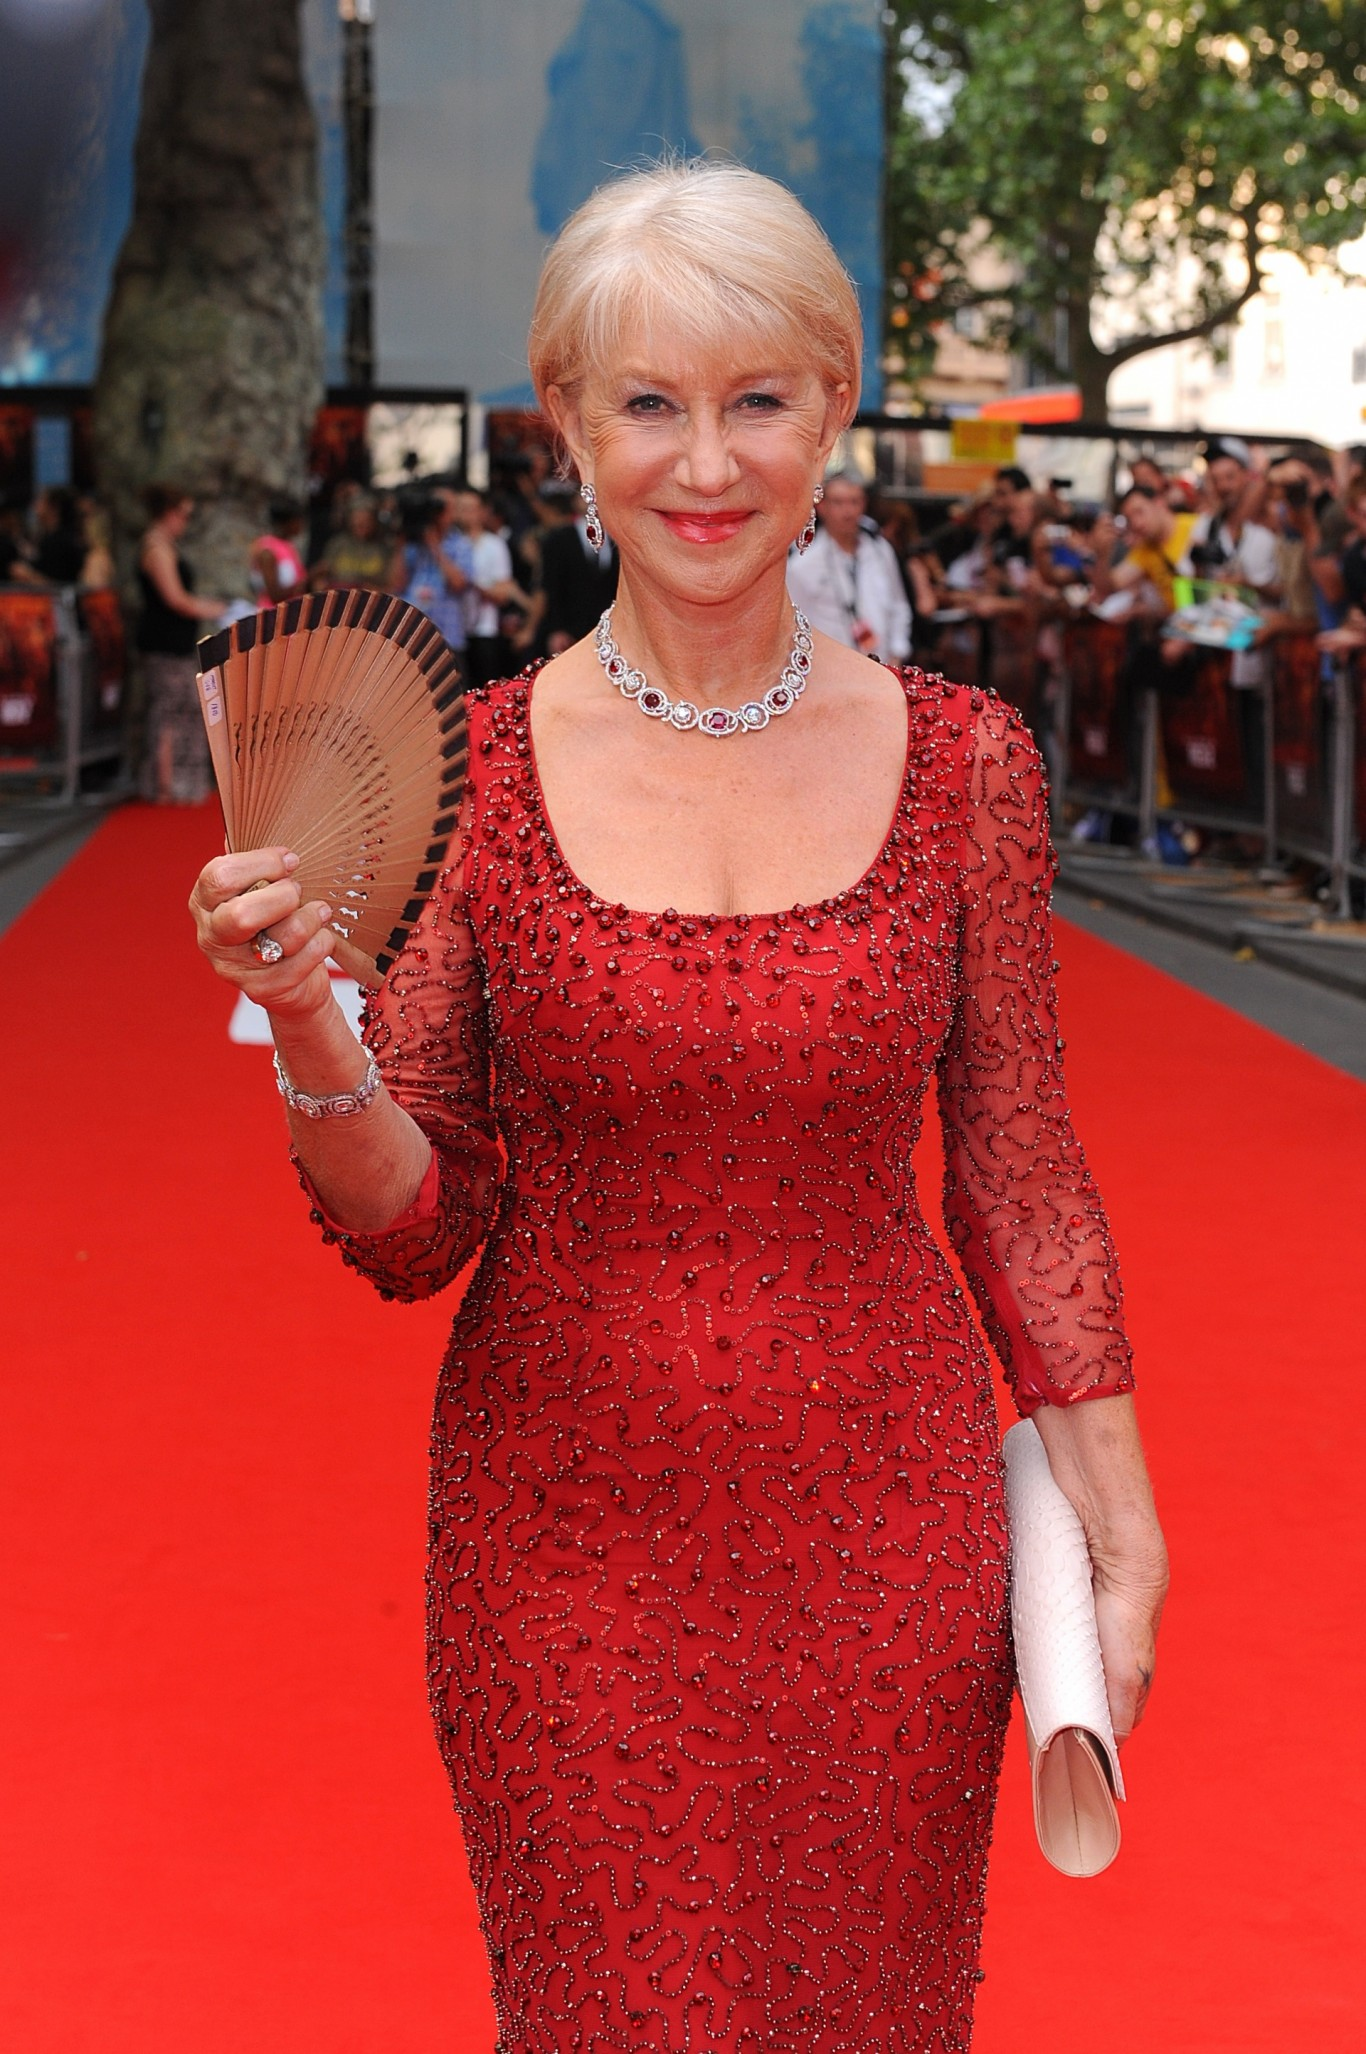 Helen Mirren wears a red jewel-encrusted dress to the premiere of Red 2